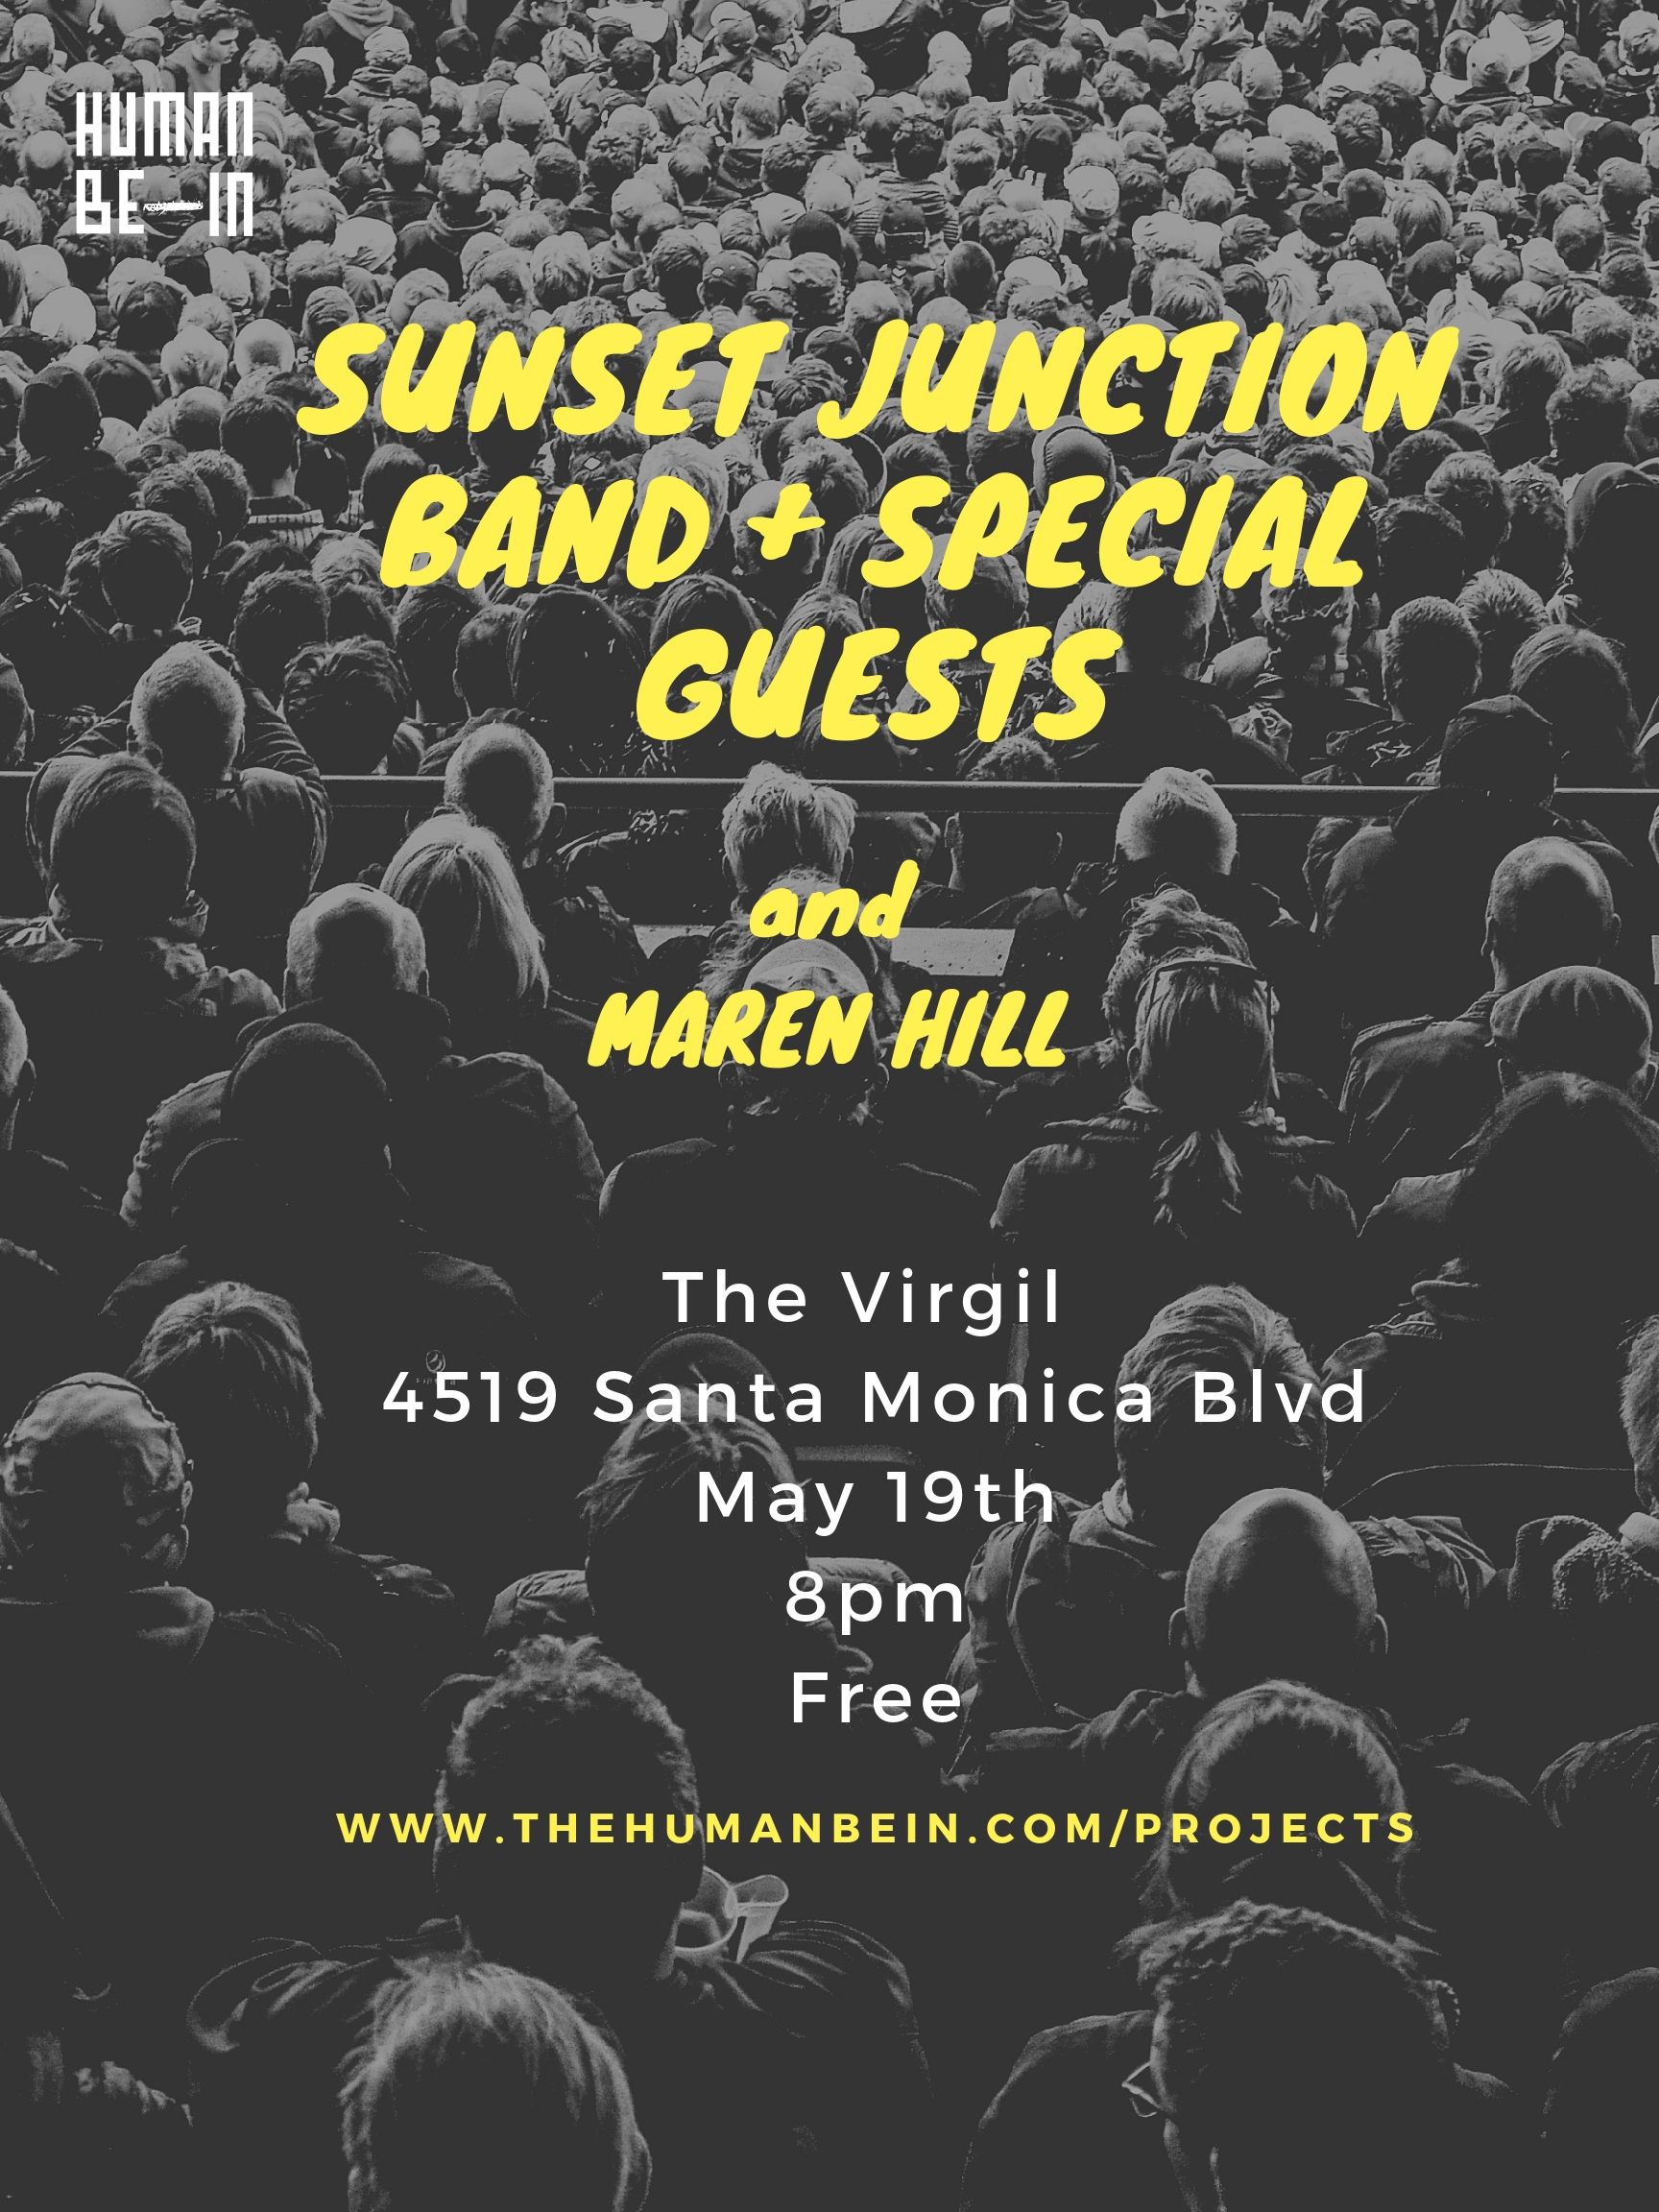 Sunset junction band + special guests.jpg